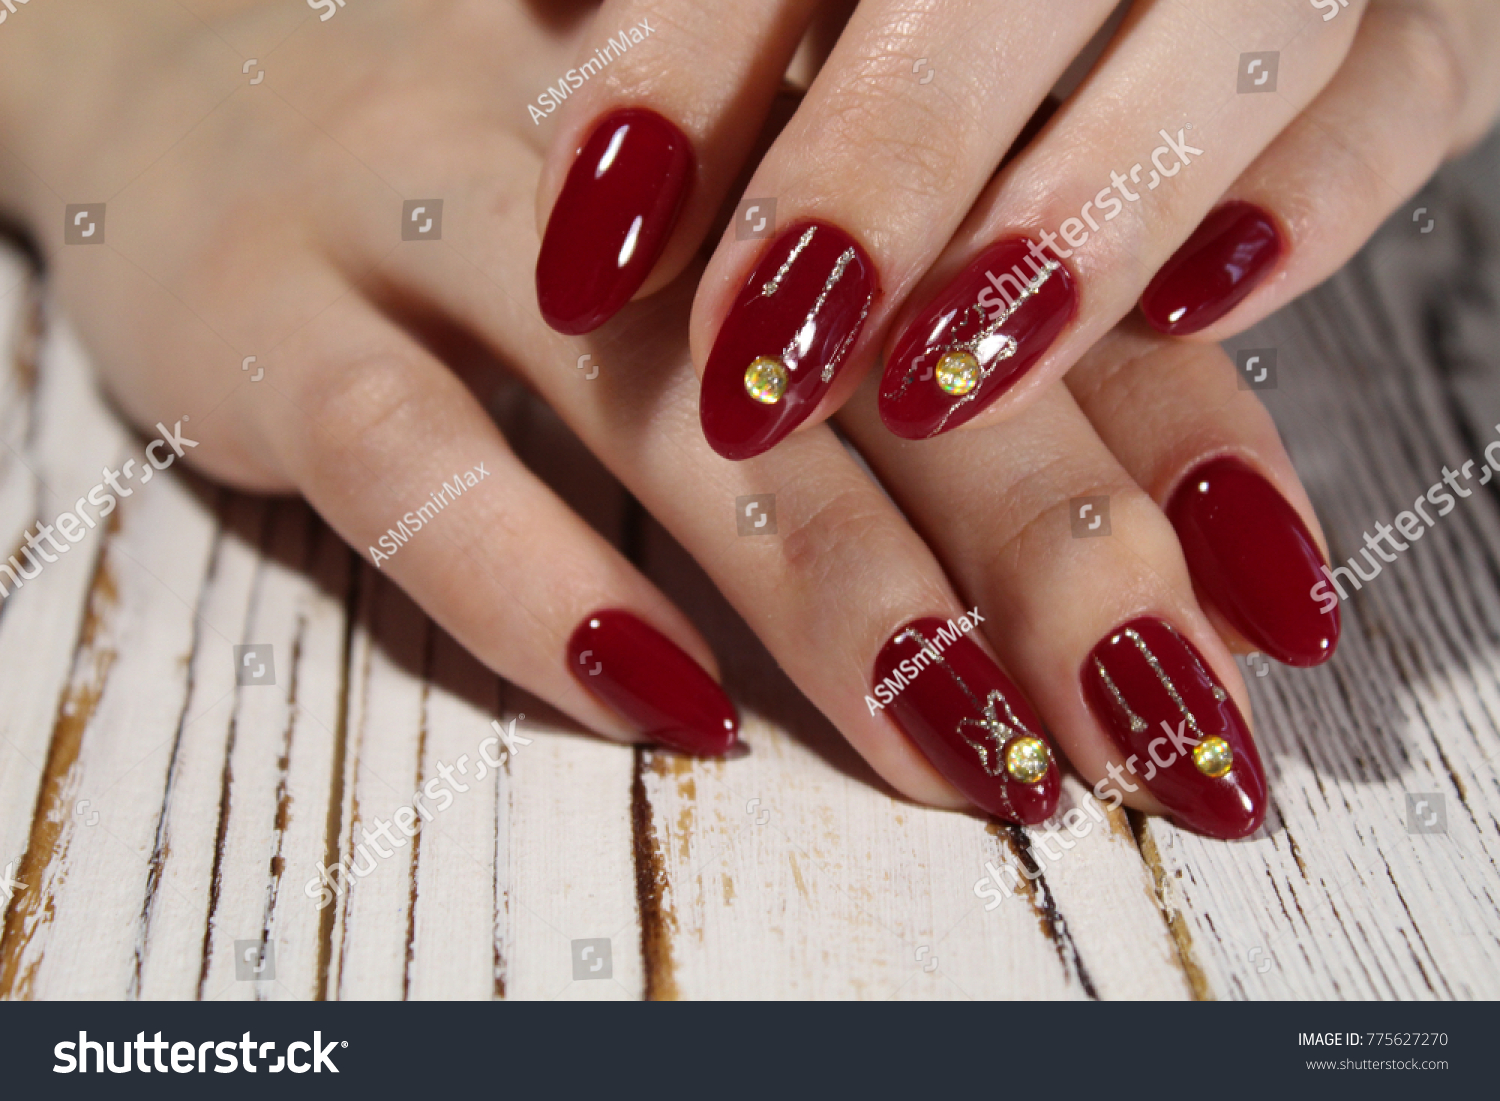 Manicured Nails Nail Polish Art Design Stock Photo Edit Now